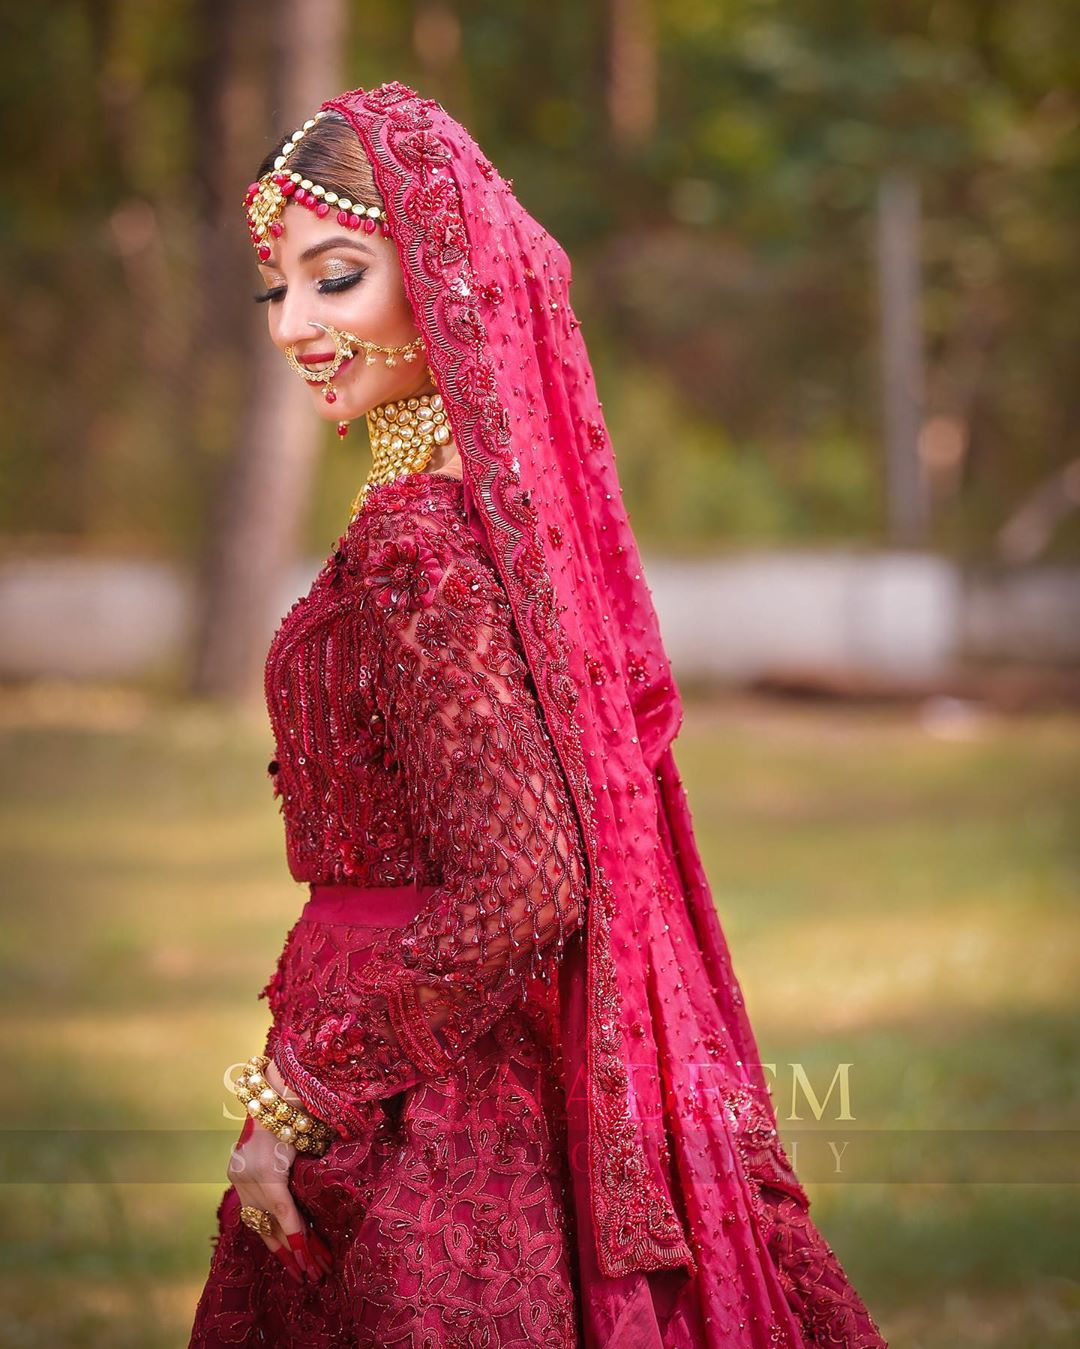 Kinza Hashmi Gorgeous Bridal Photoshoot